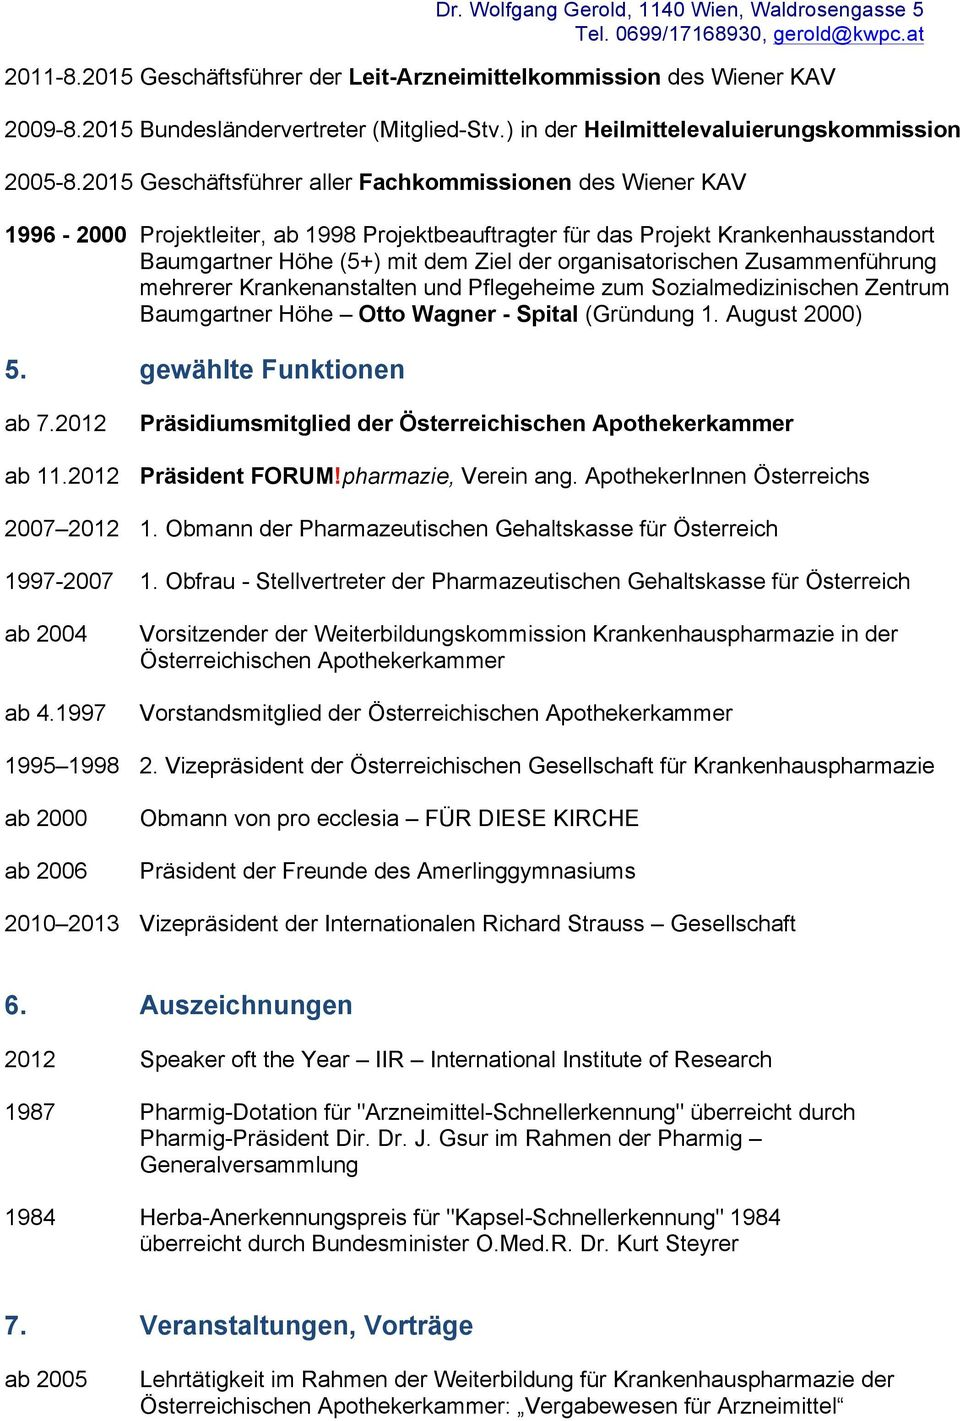 Charmant Vizepräsident Lebenslauf Ideen - Entry Level Resume ...